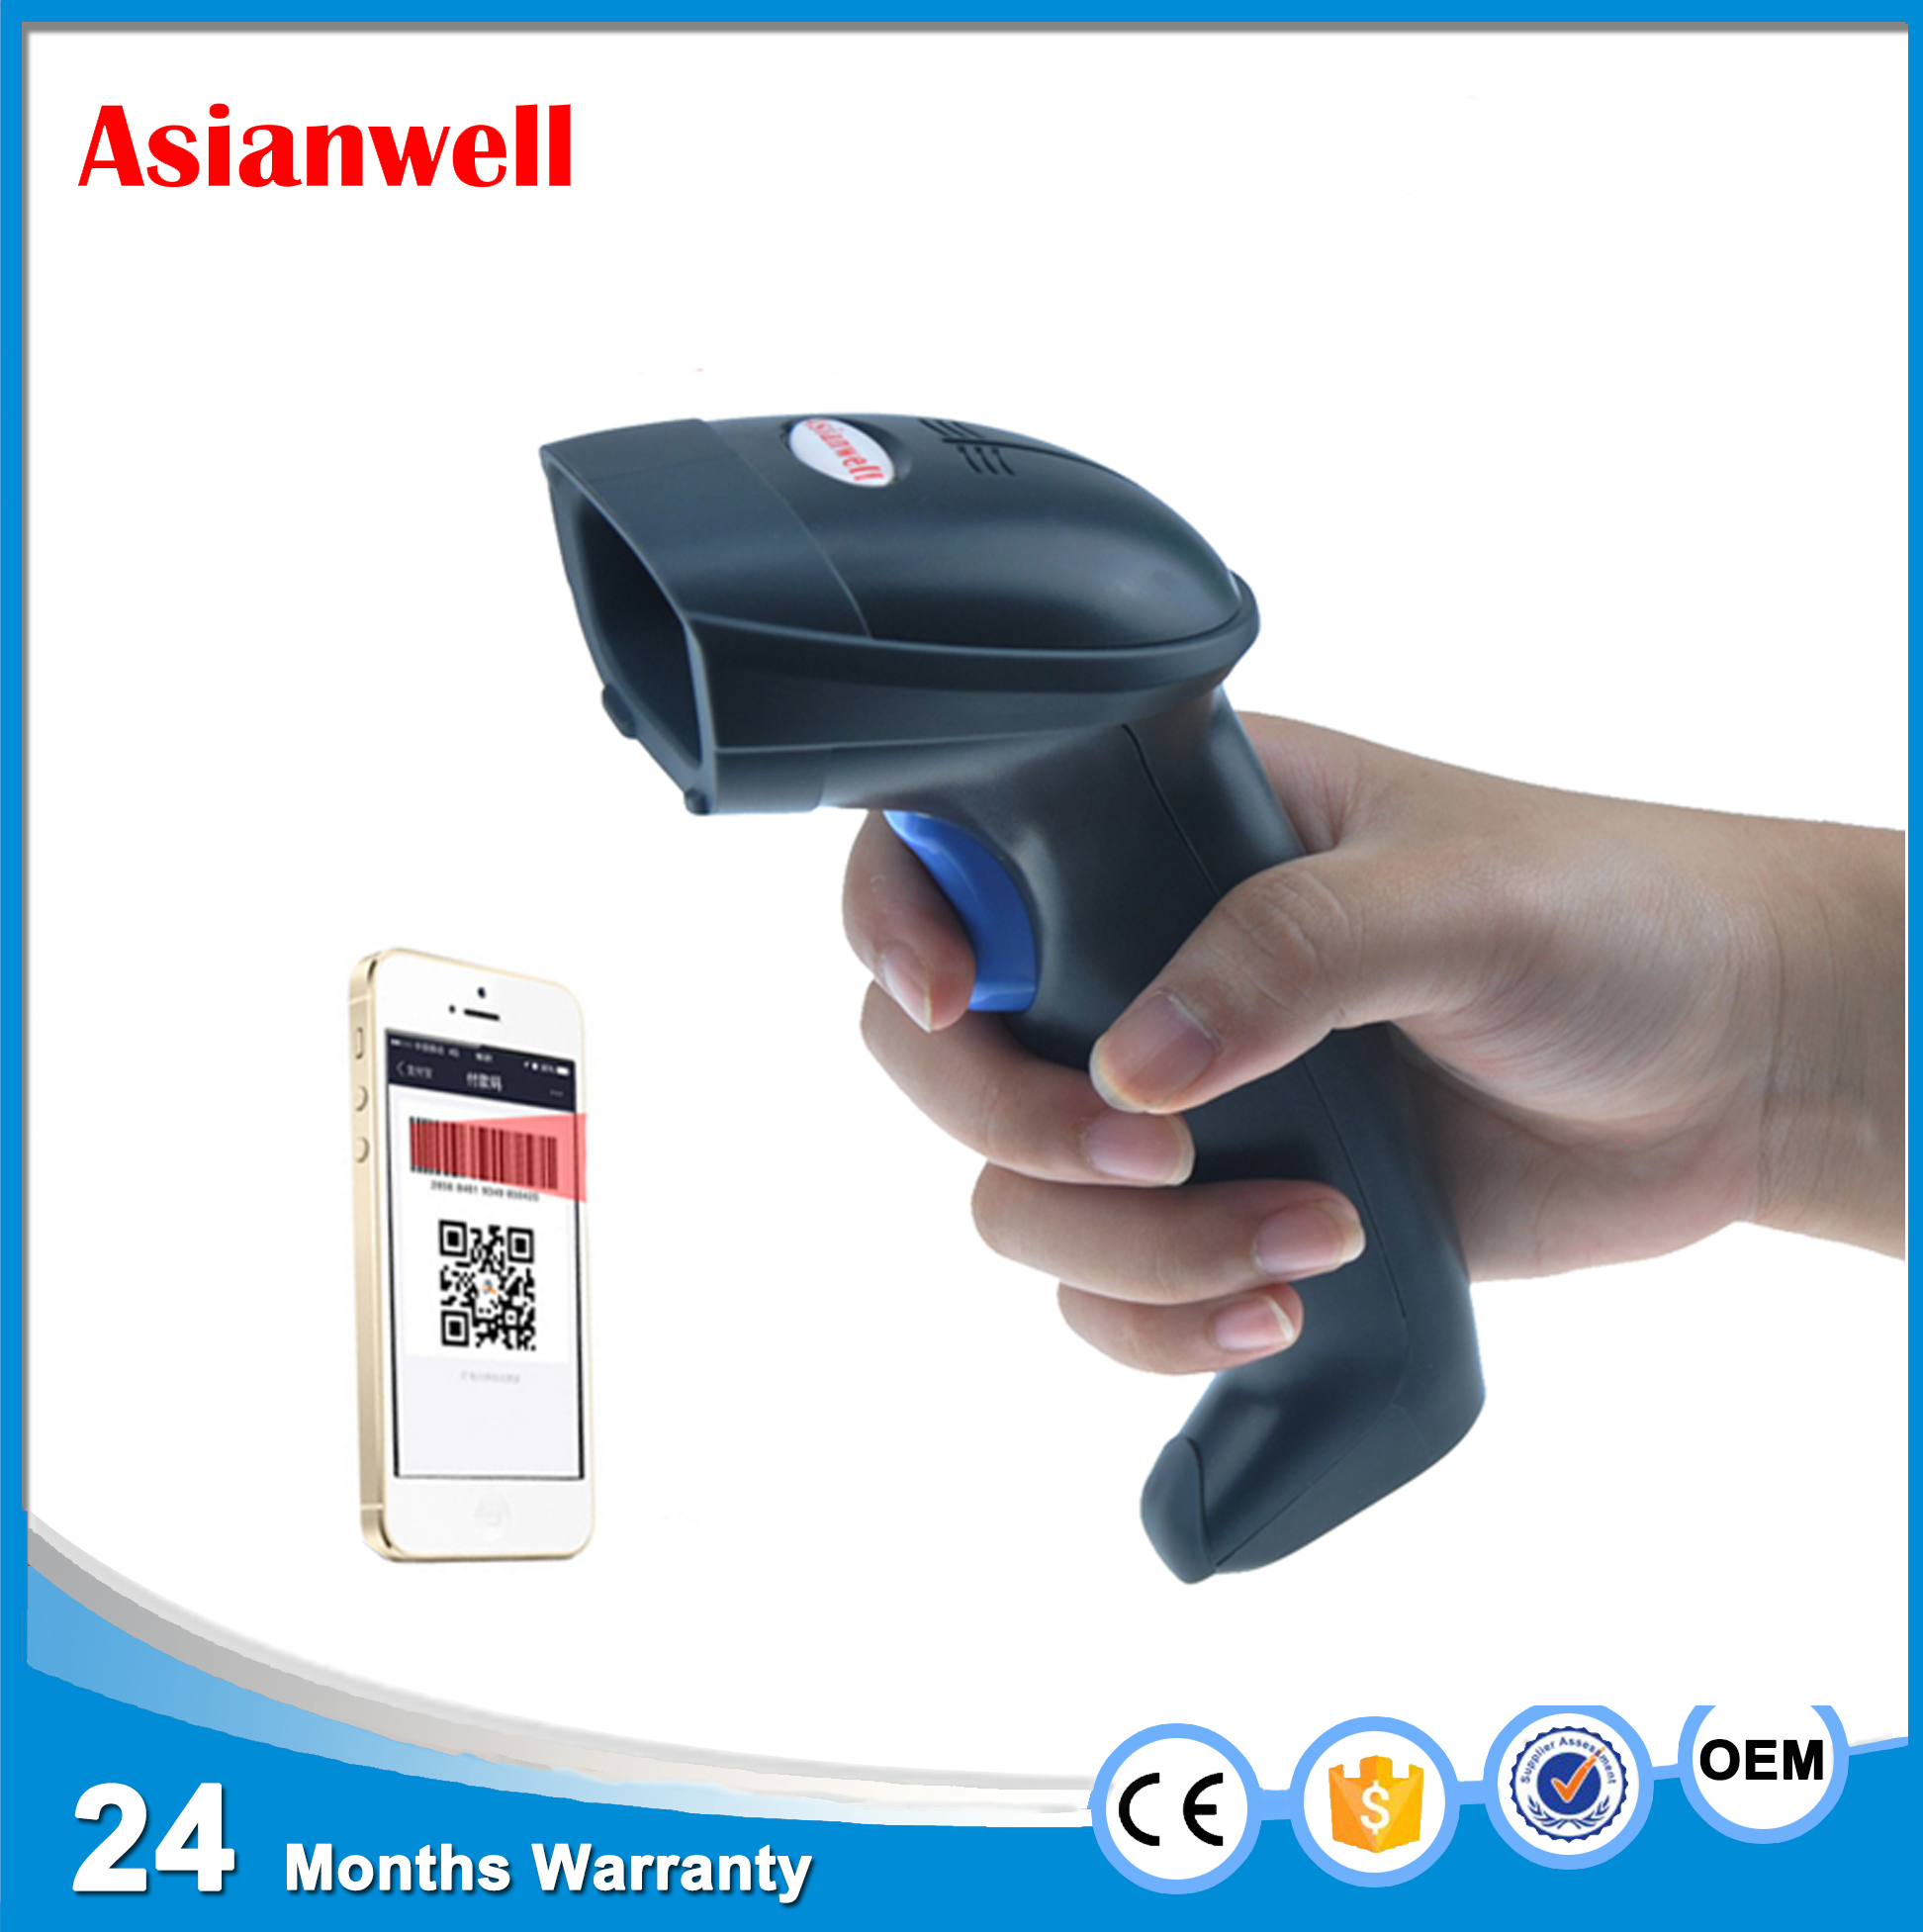 Hotsale new 2d barcode reader pos handheld scanner 1d qr code oem automatic module wired rs232 usb auto sense bar code scanner